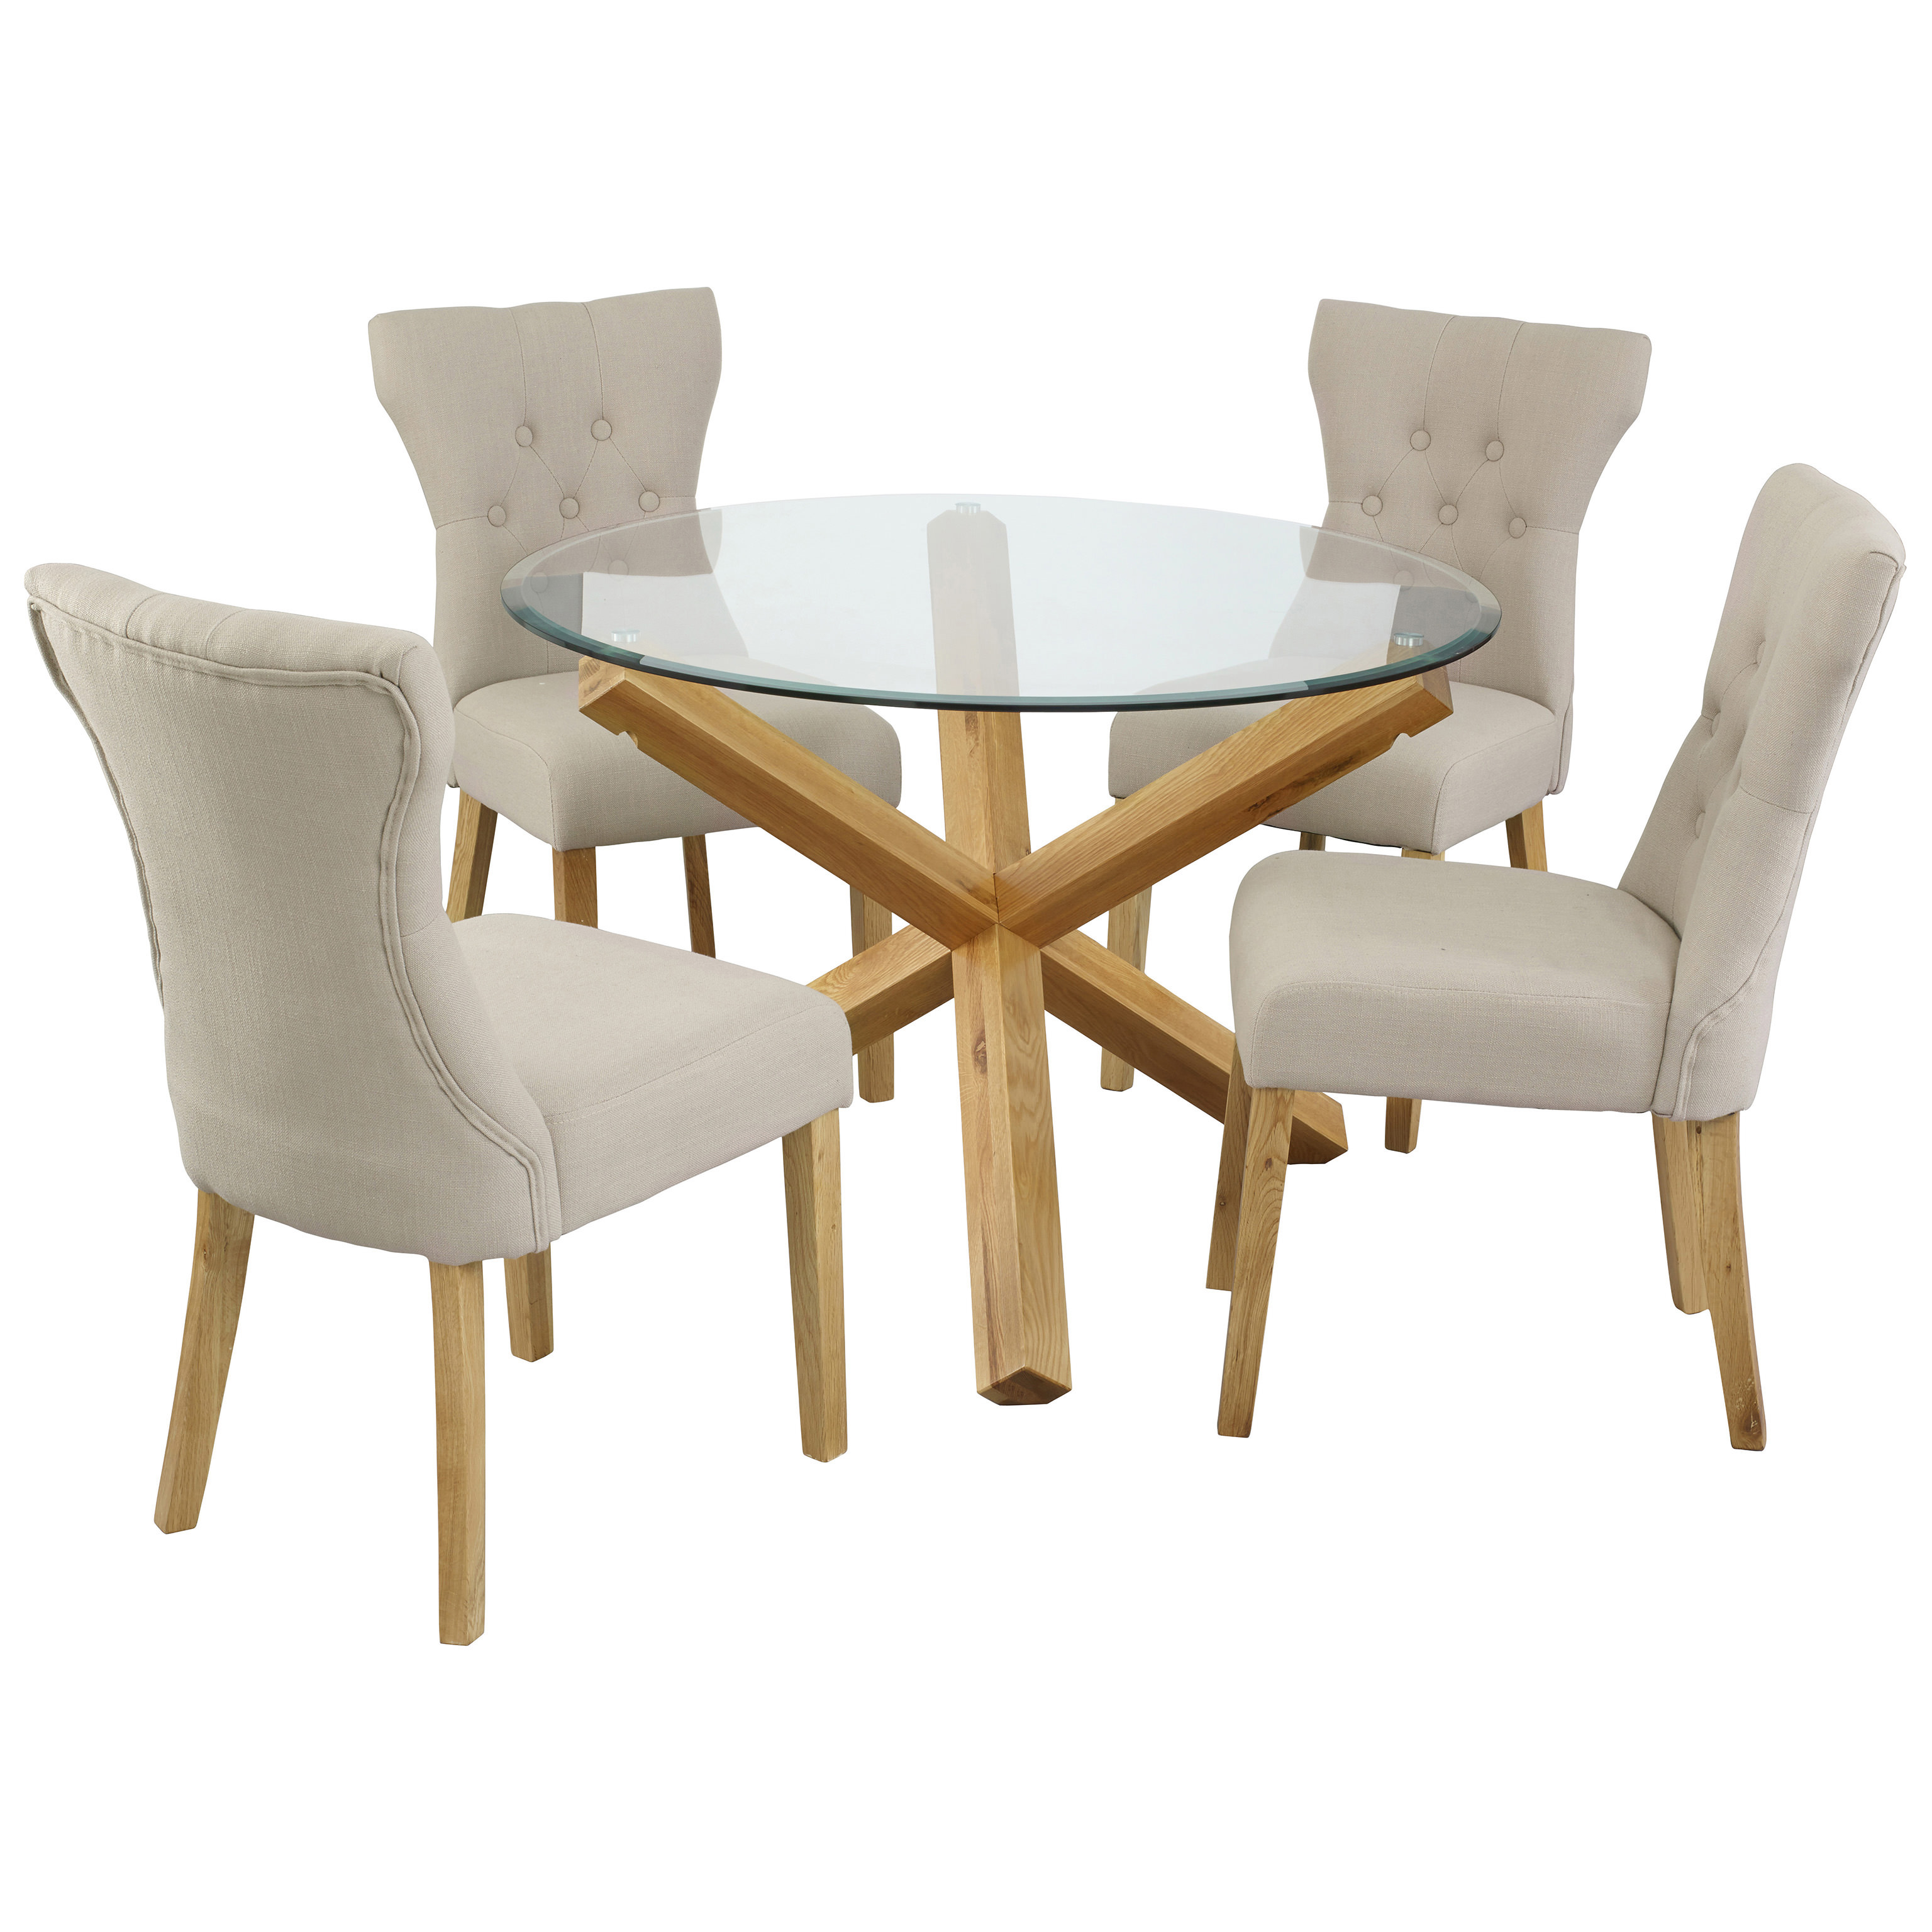 Oak amp Glass Round Dining Table and Chair Set with 4 Fabric  : l655oportodiningset4napleschairsgrey1 from www.ebay.co.uk size 3072 x 3072 jpeg 1043kB